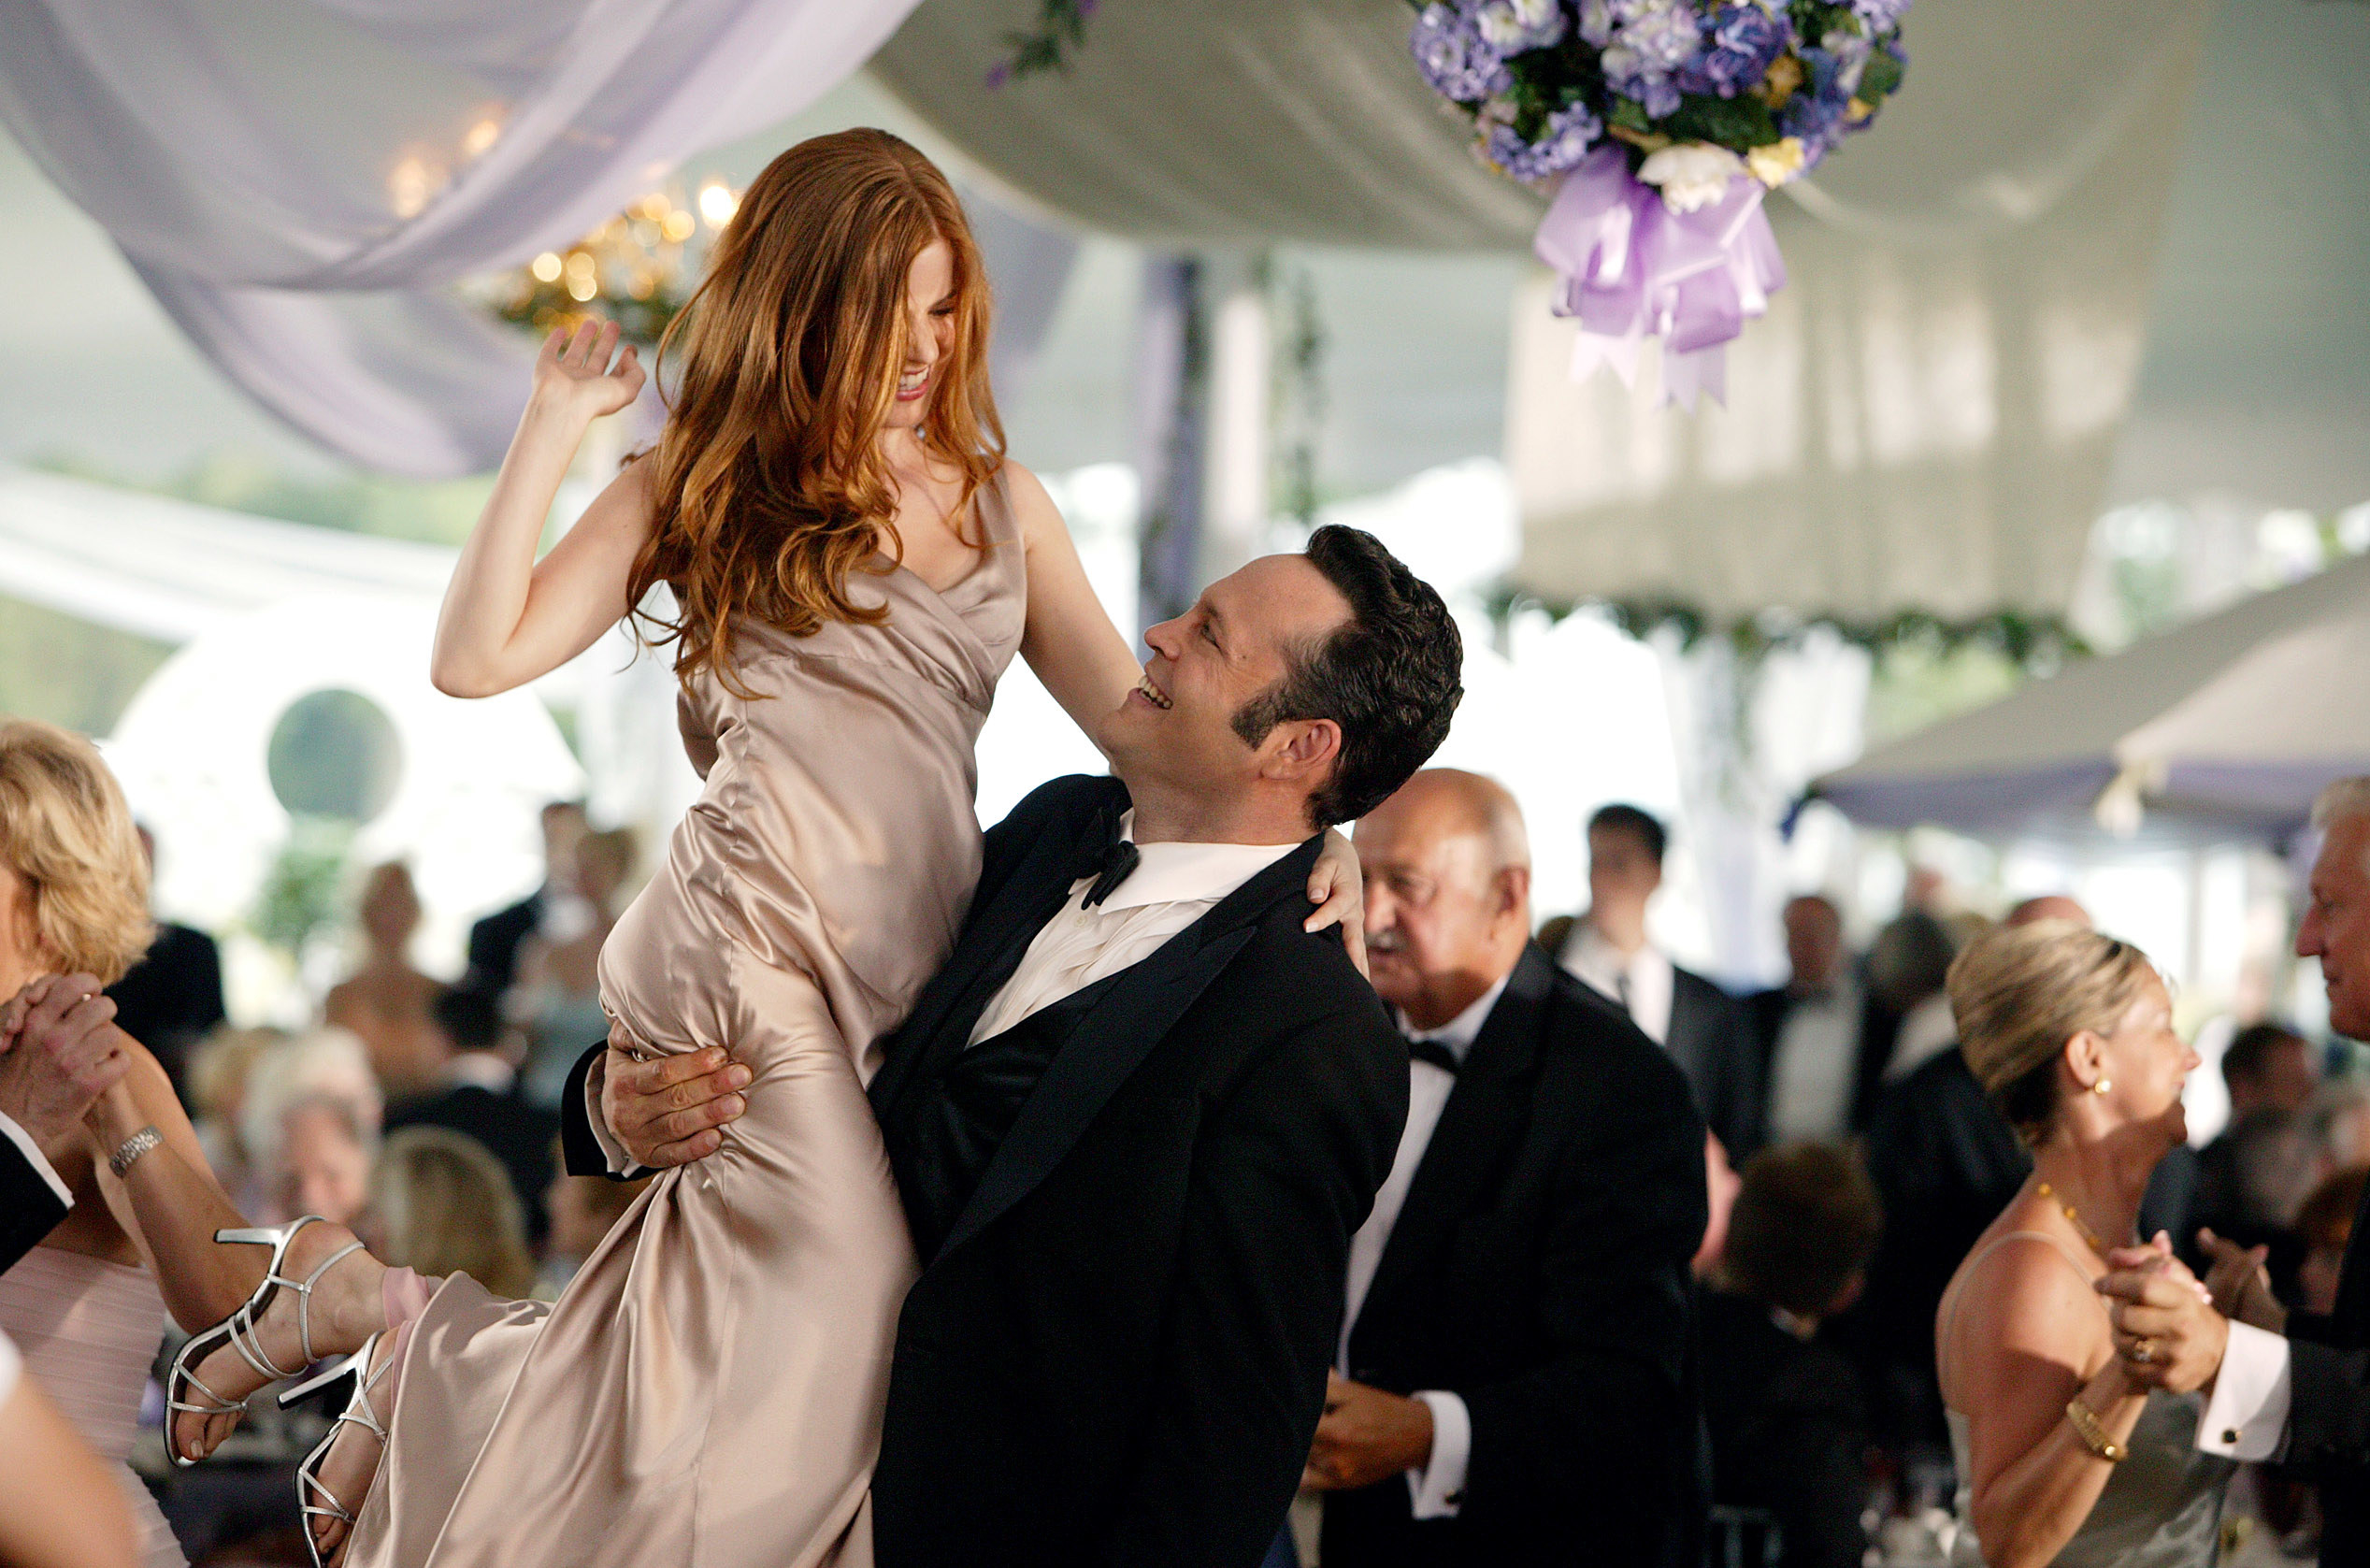 Jeremy and Gloria dancing at the wedding